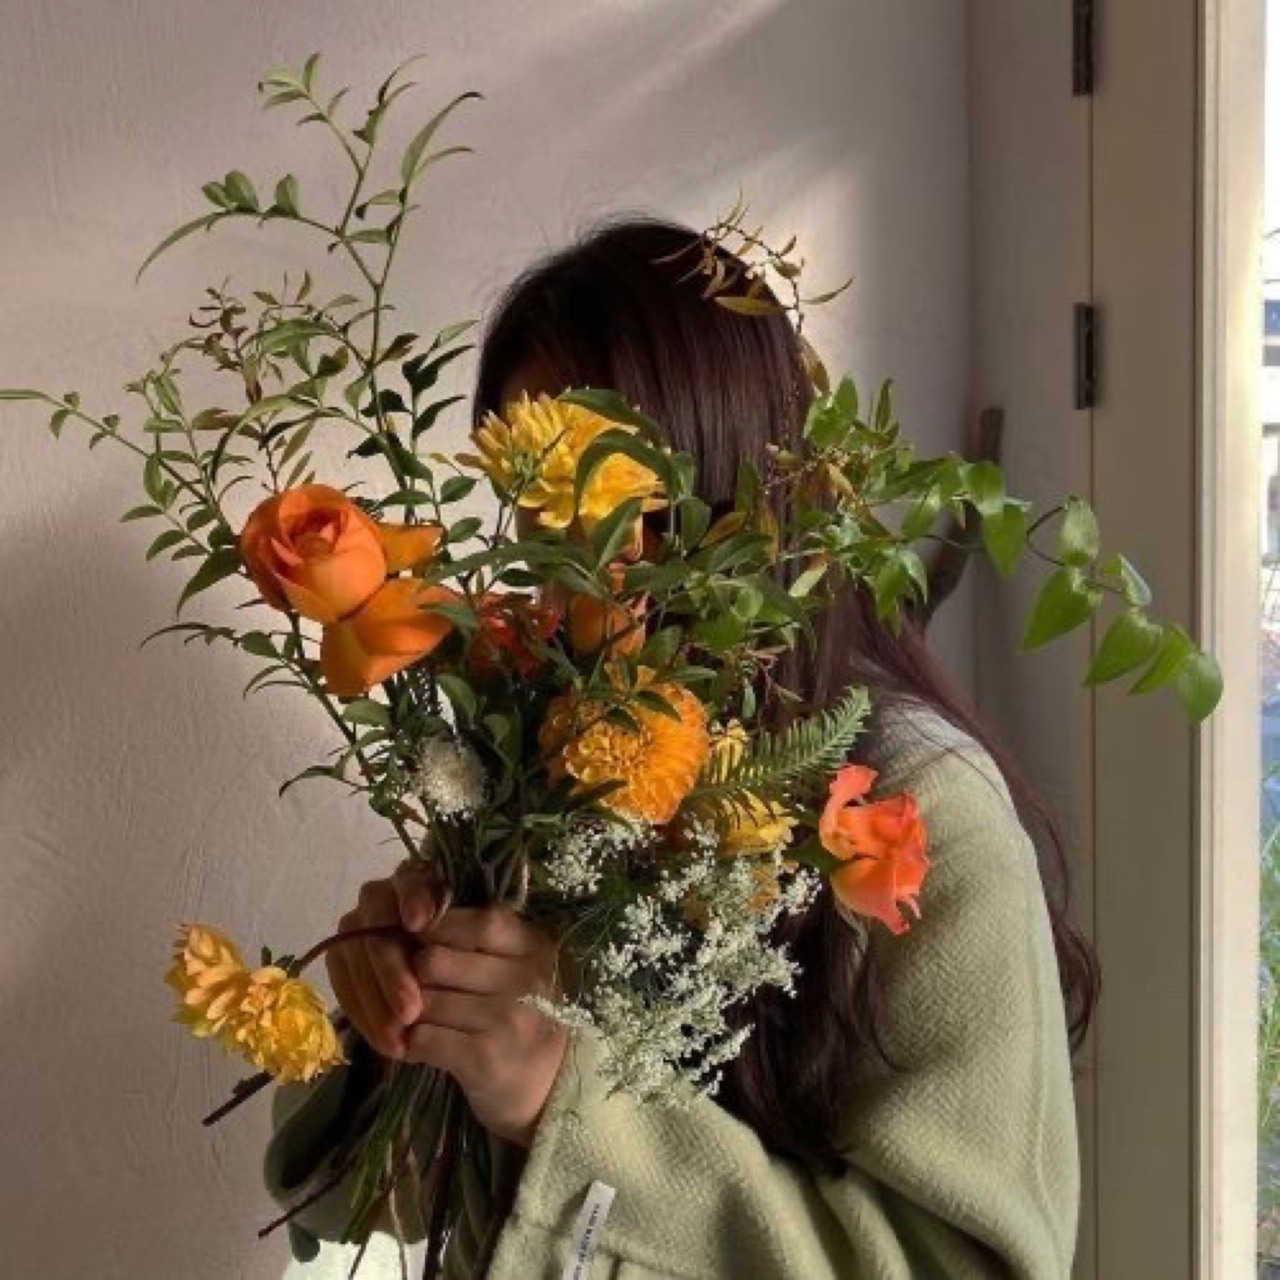 flowers and aesthetic image